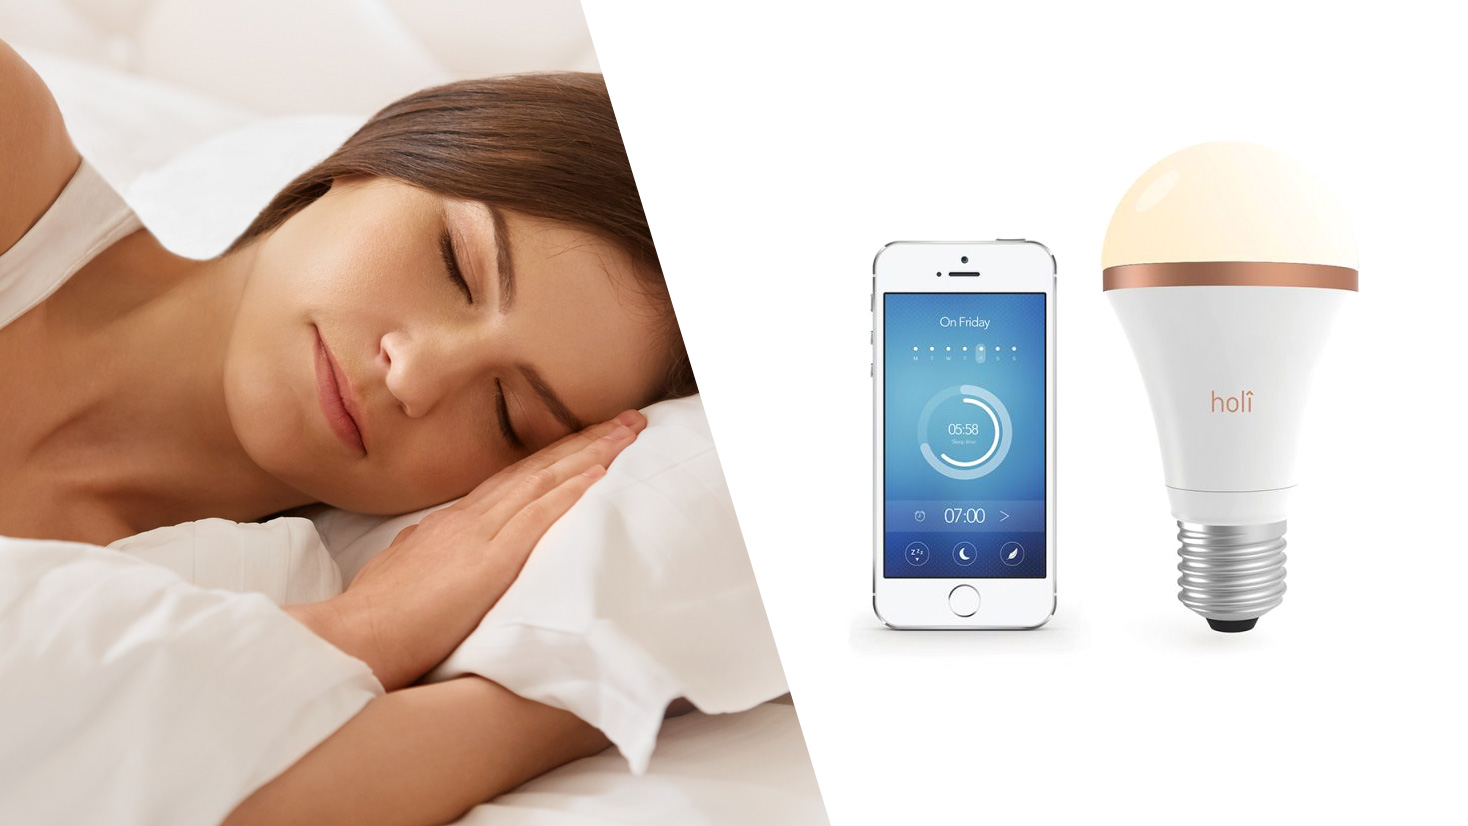 L'ampoule Sleep Companion de Holi